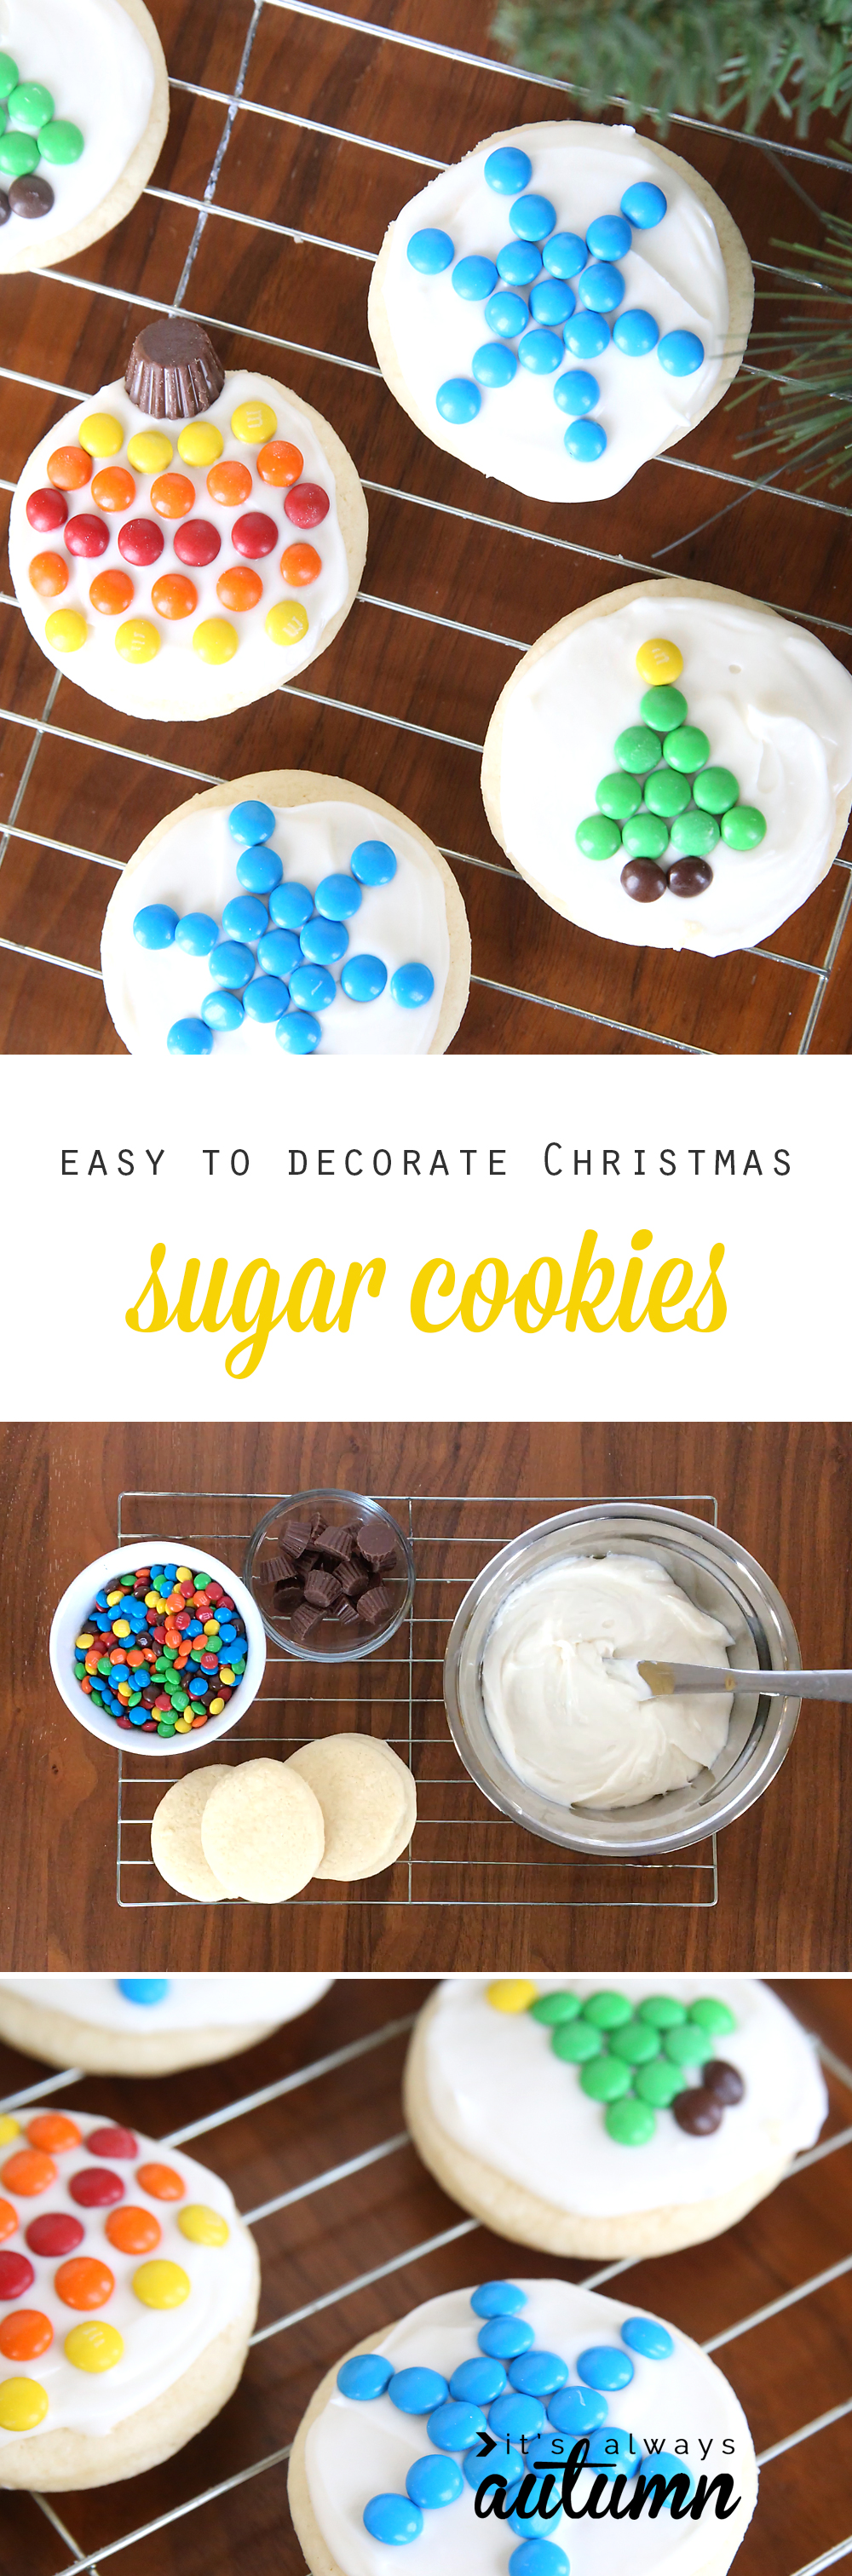 mini mms make it super easy to decorate christmas sugar cookies